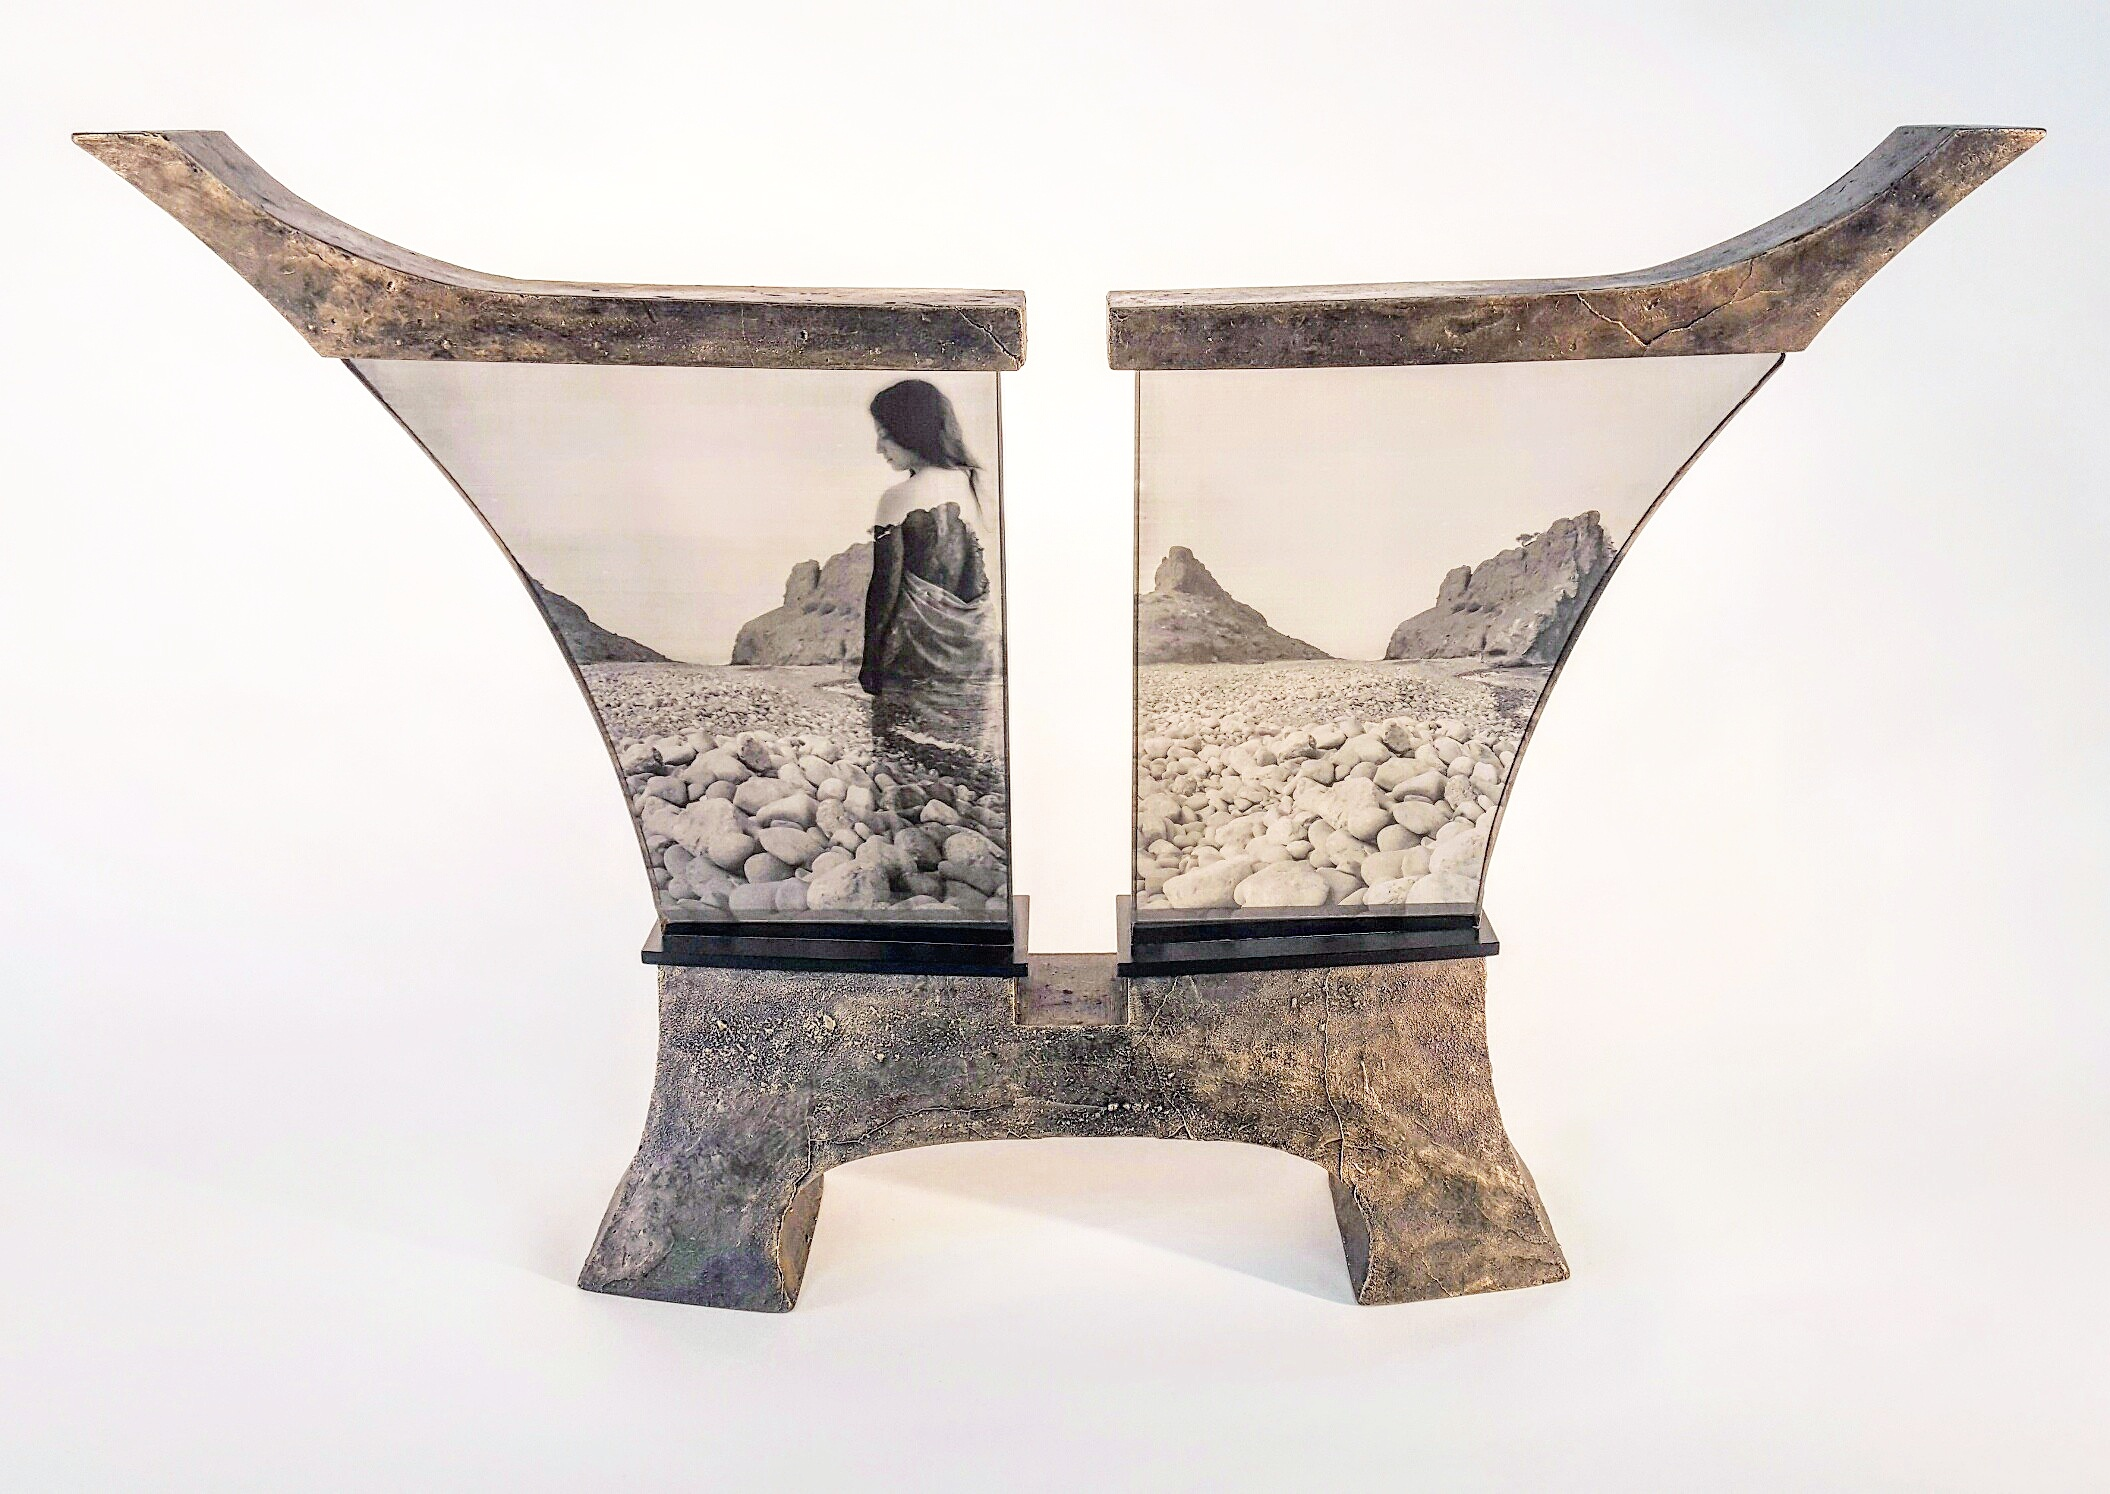 Glass sculpture with figurative image by Mary Van Cline